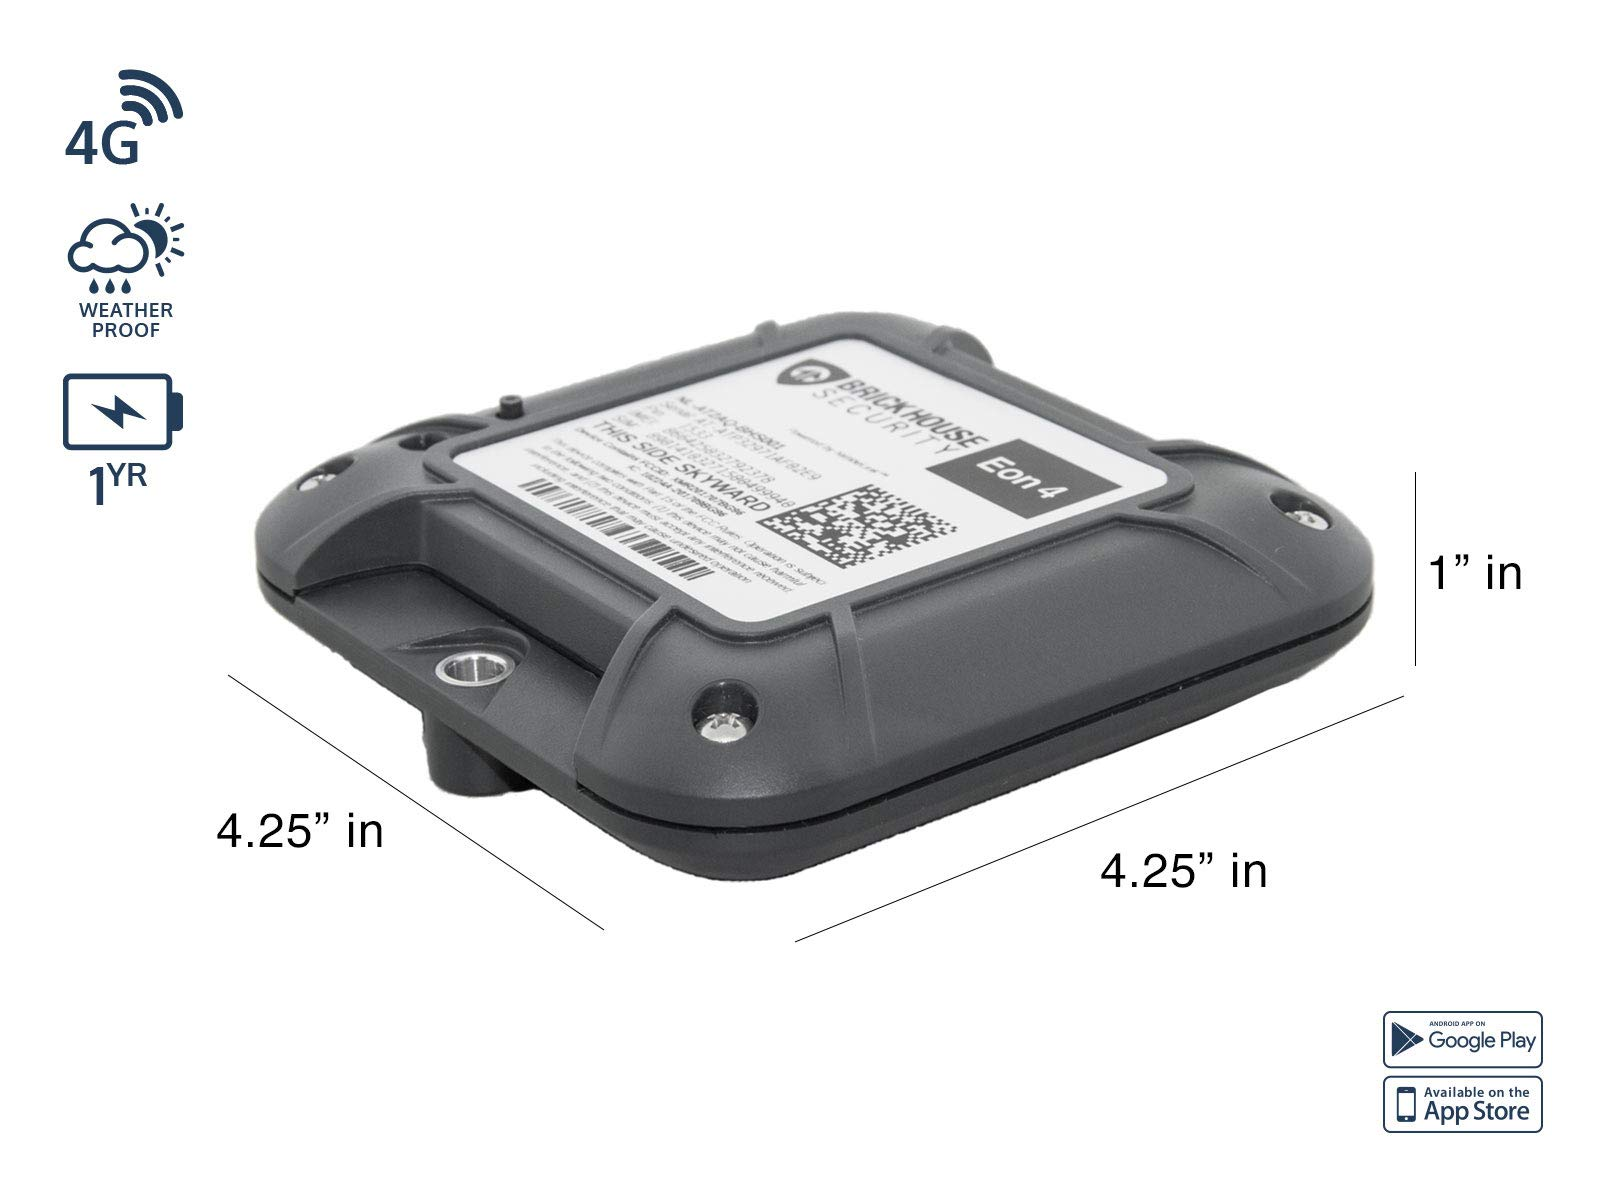 4G EON 4 Long Life GPS Tracker - 5 Year Battery Life Asset Tracker by Brickhouse Security